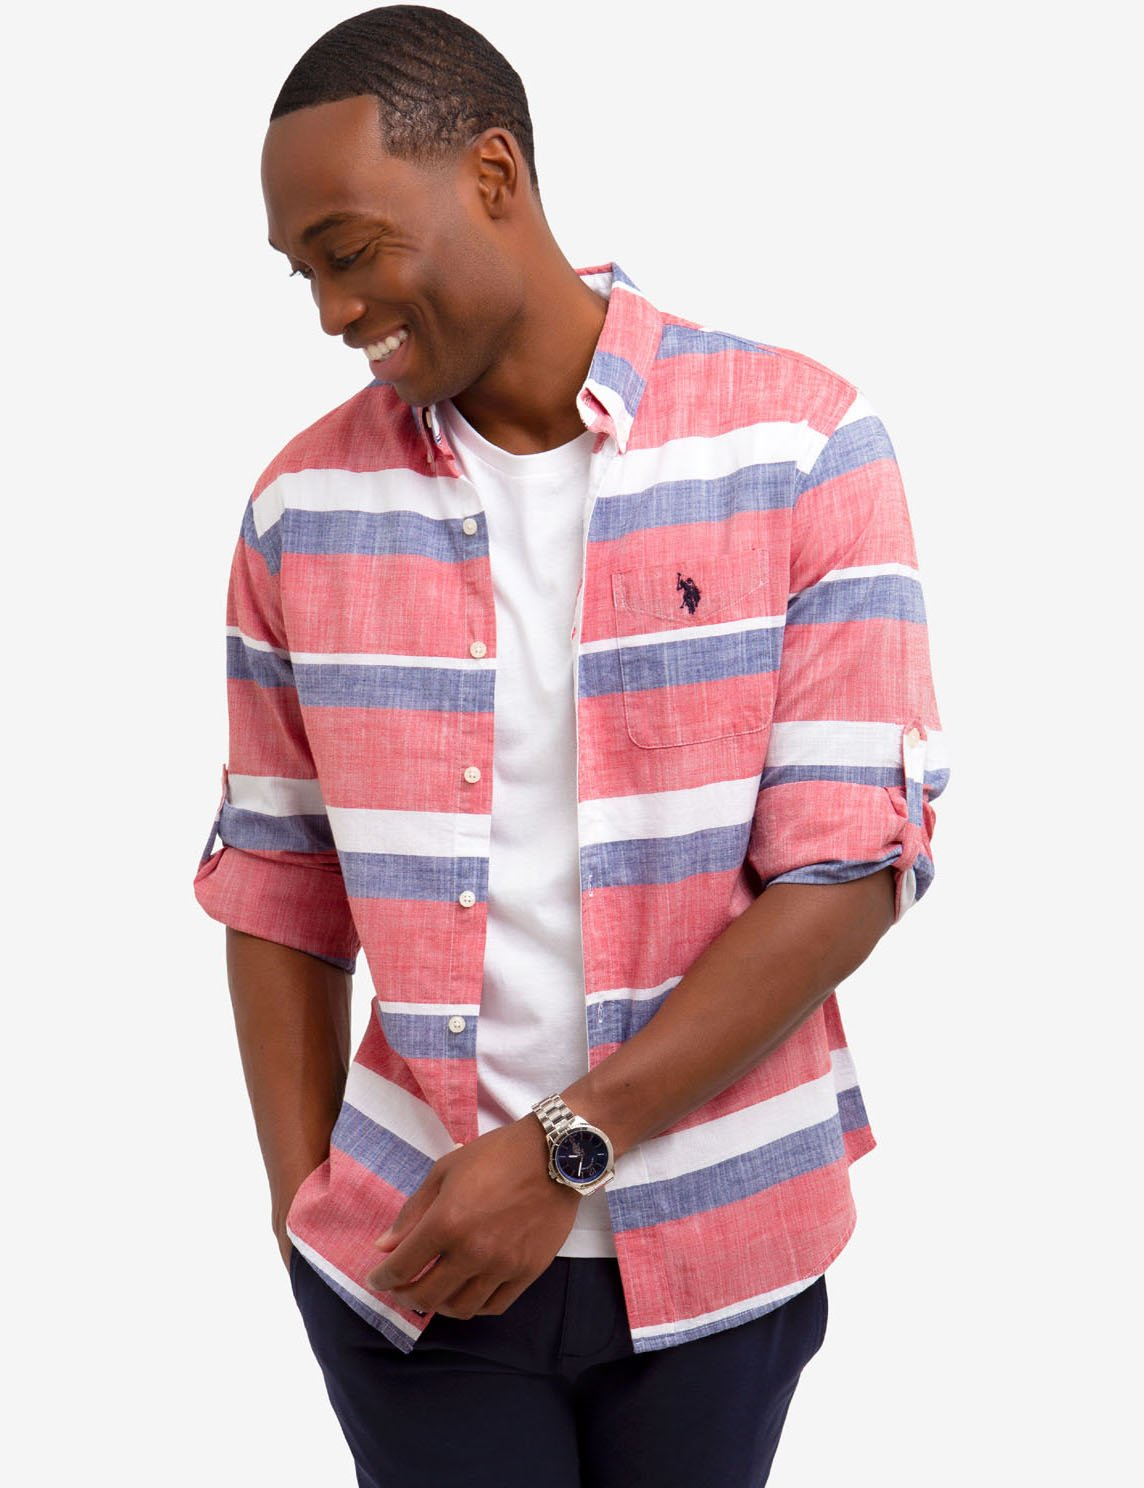 HORIZONTAL STRIPED SLIM FIT SHIRT - U.S. Polo Assn.